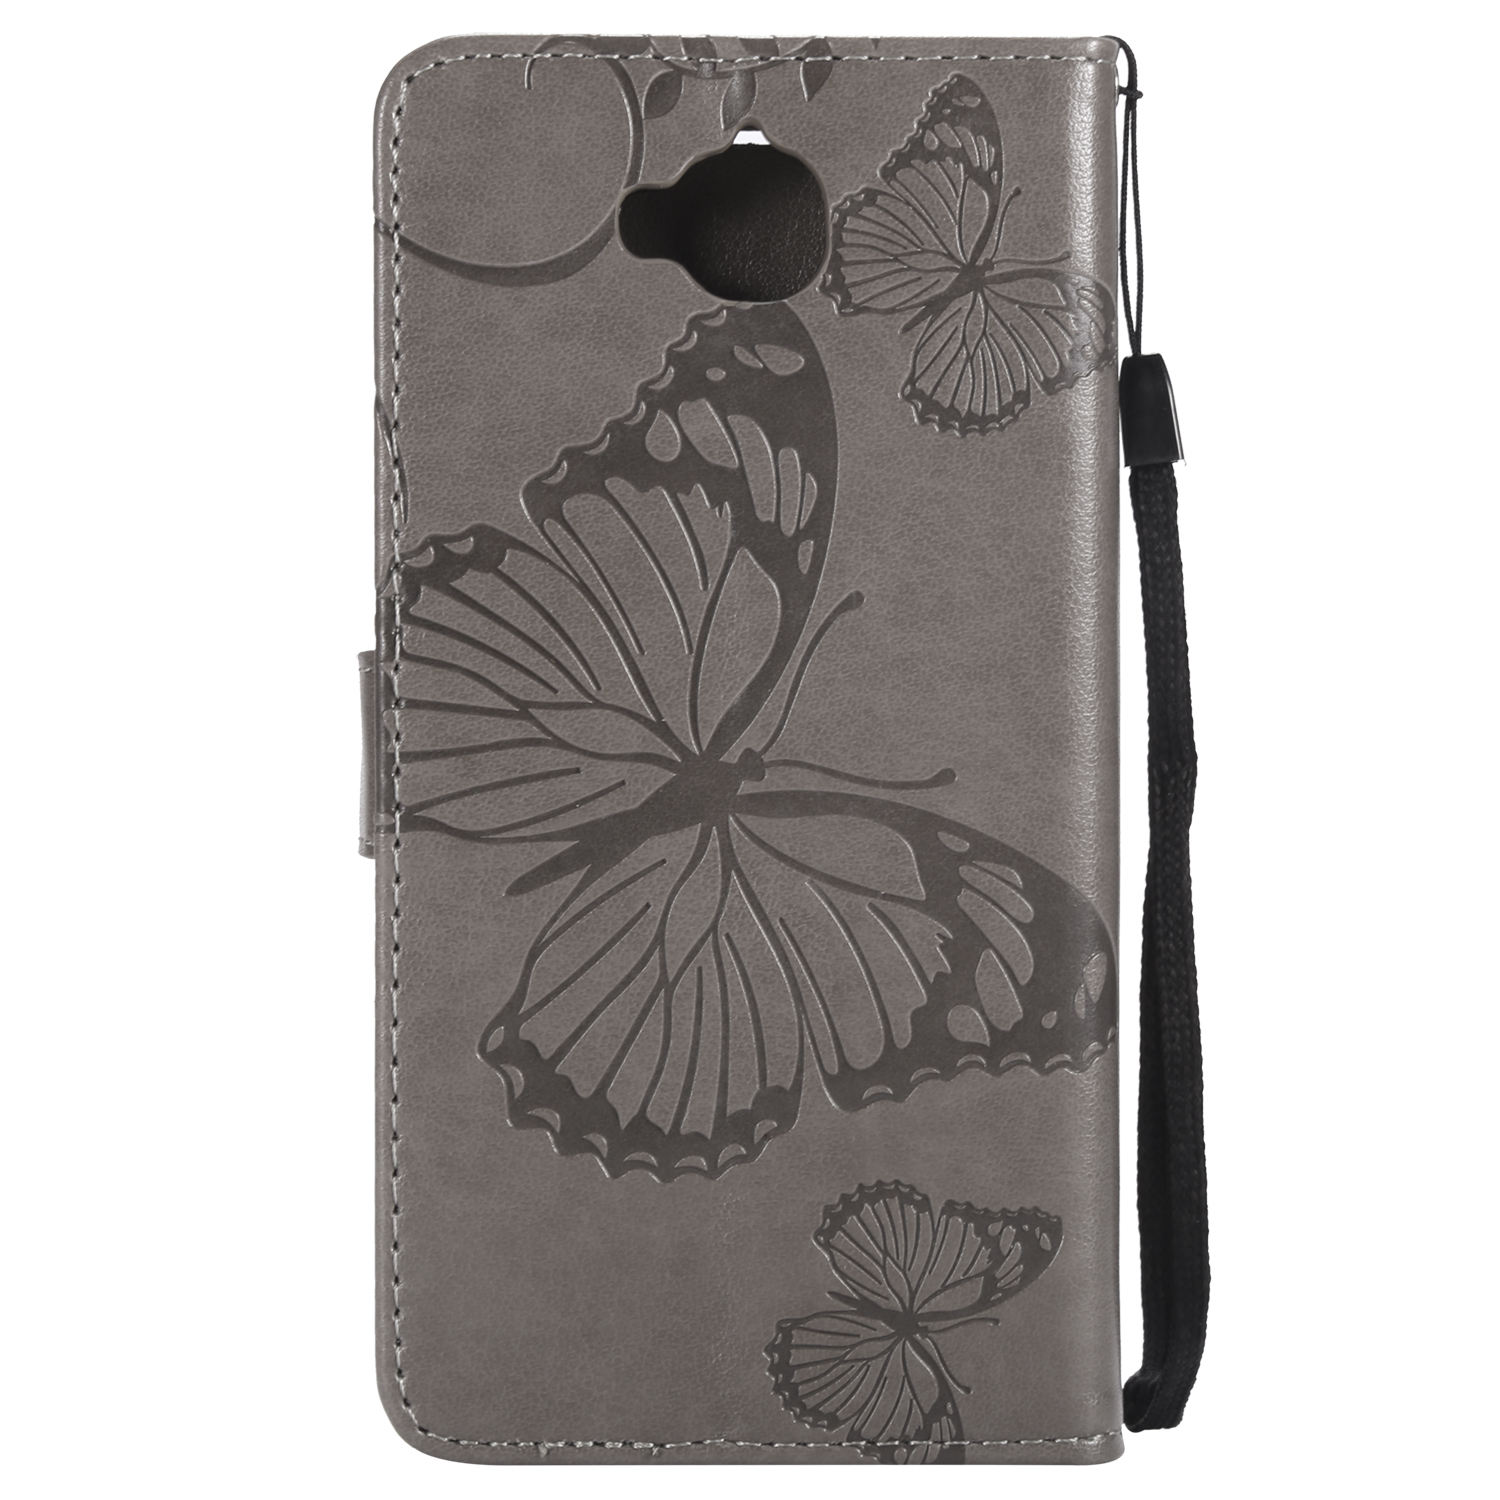 New Butterfly For Huawei Honor 10 V10 10 Lite case Book Style Wallet Flip Leather silicone back cover fundas phone bag